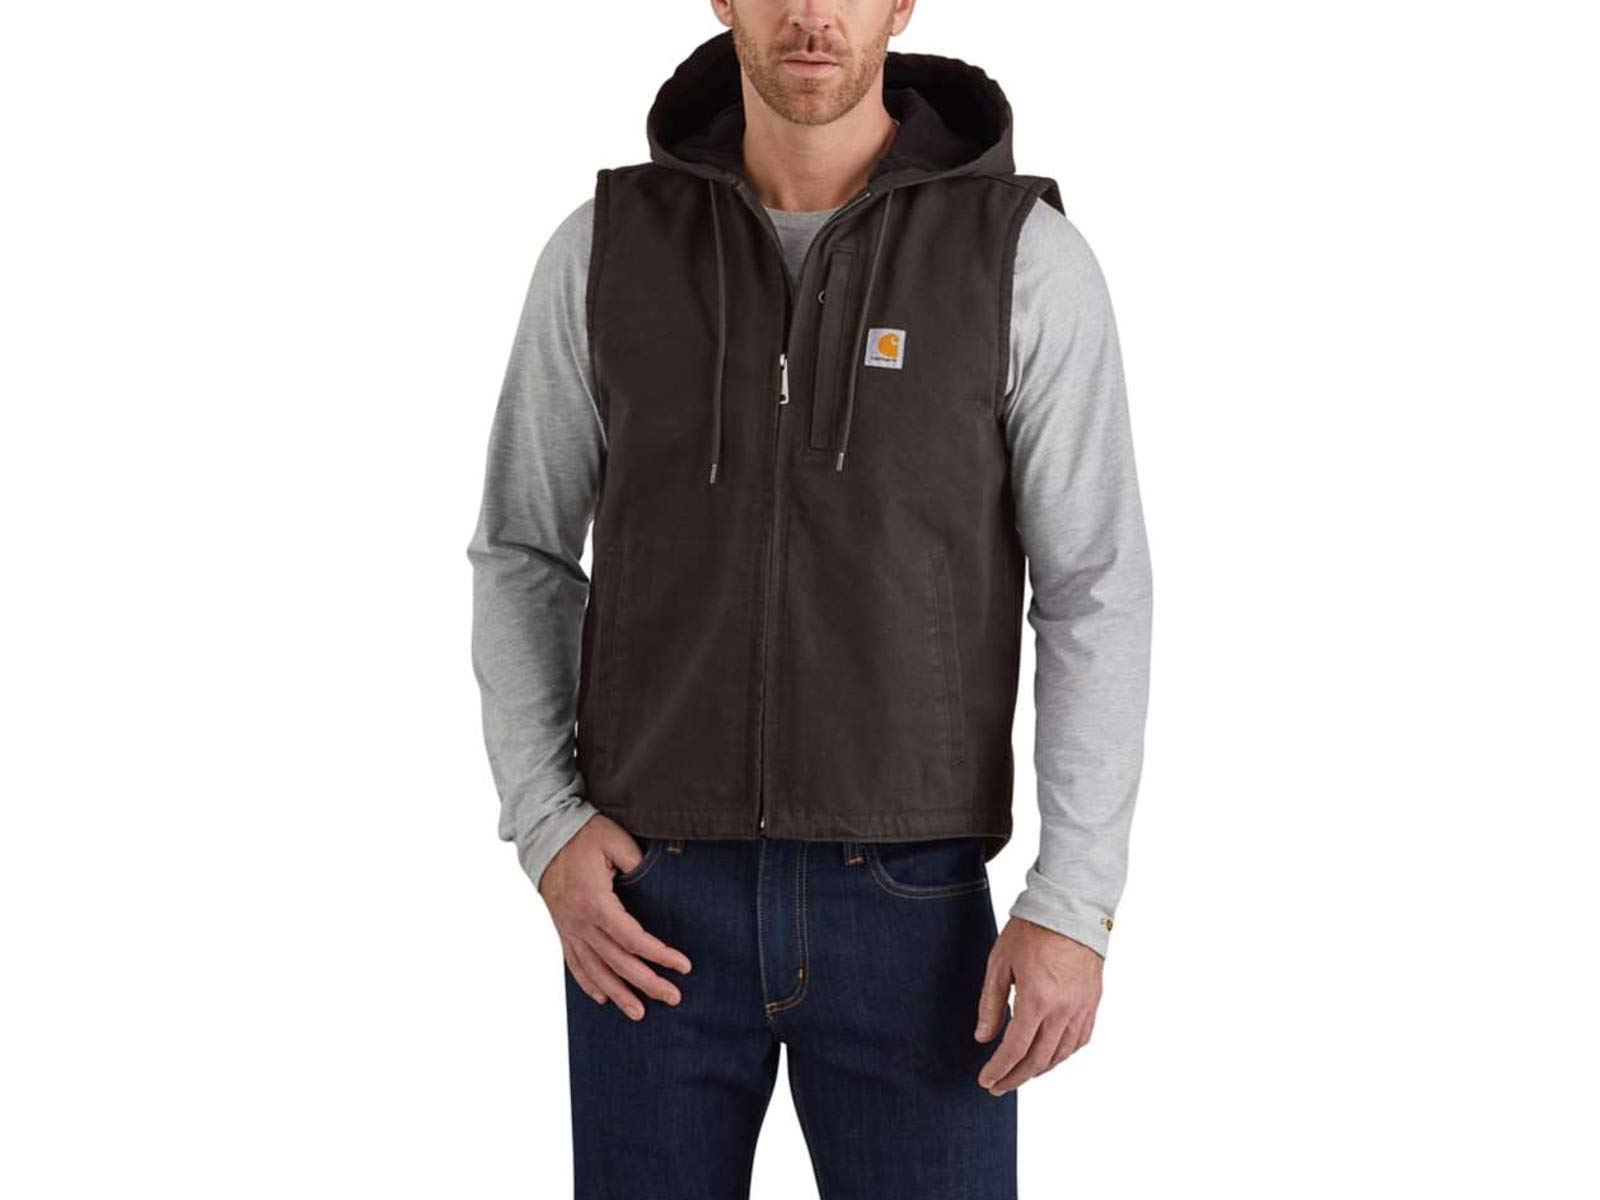 Carhartt Men's Knoxville Vest (Regular and Big & Tall Sizes), Dark Brown, Large by Carhartt